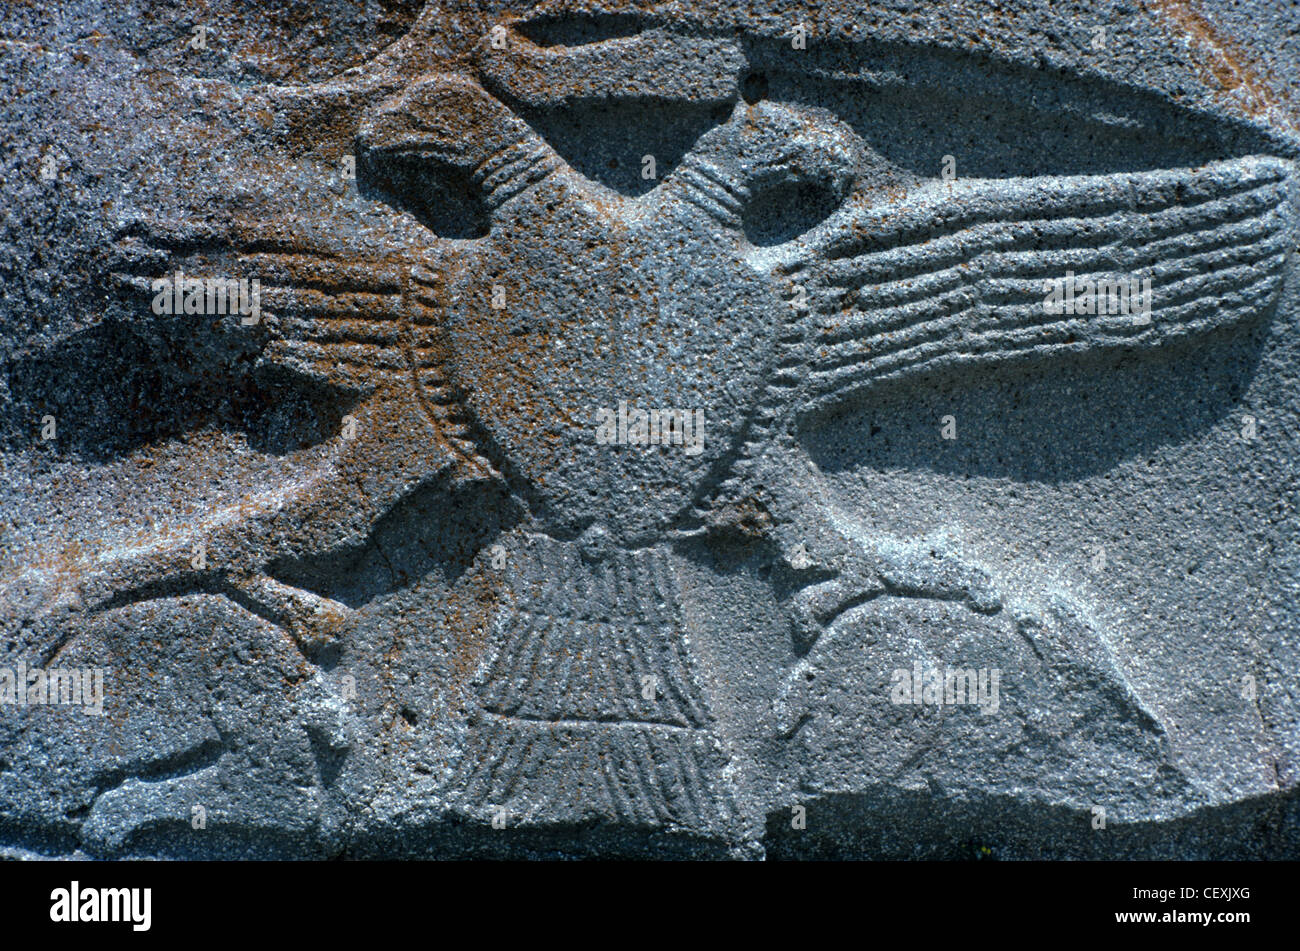 Hittite bas relief or stone carving of two headed eagle